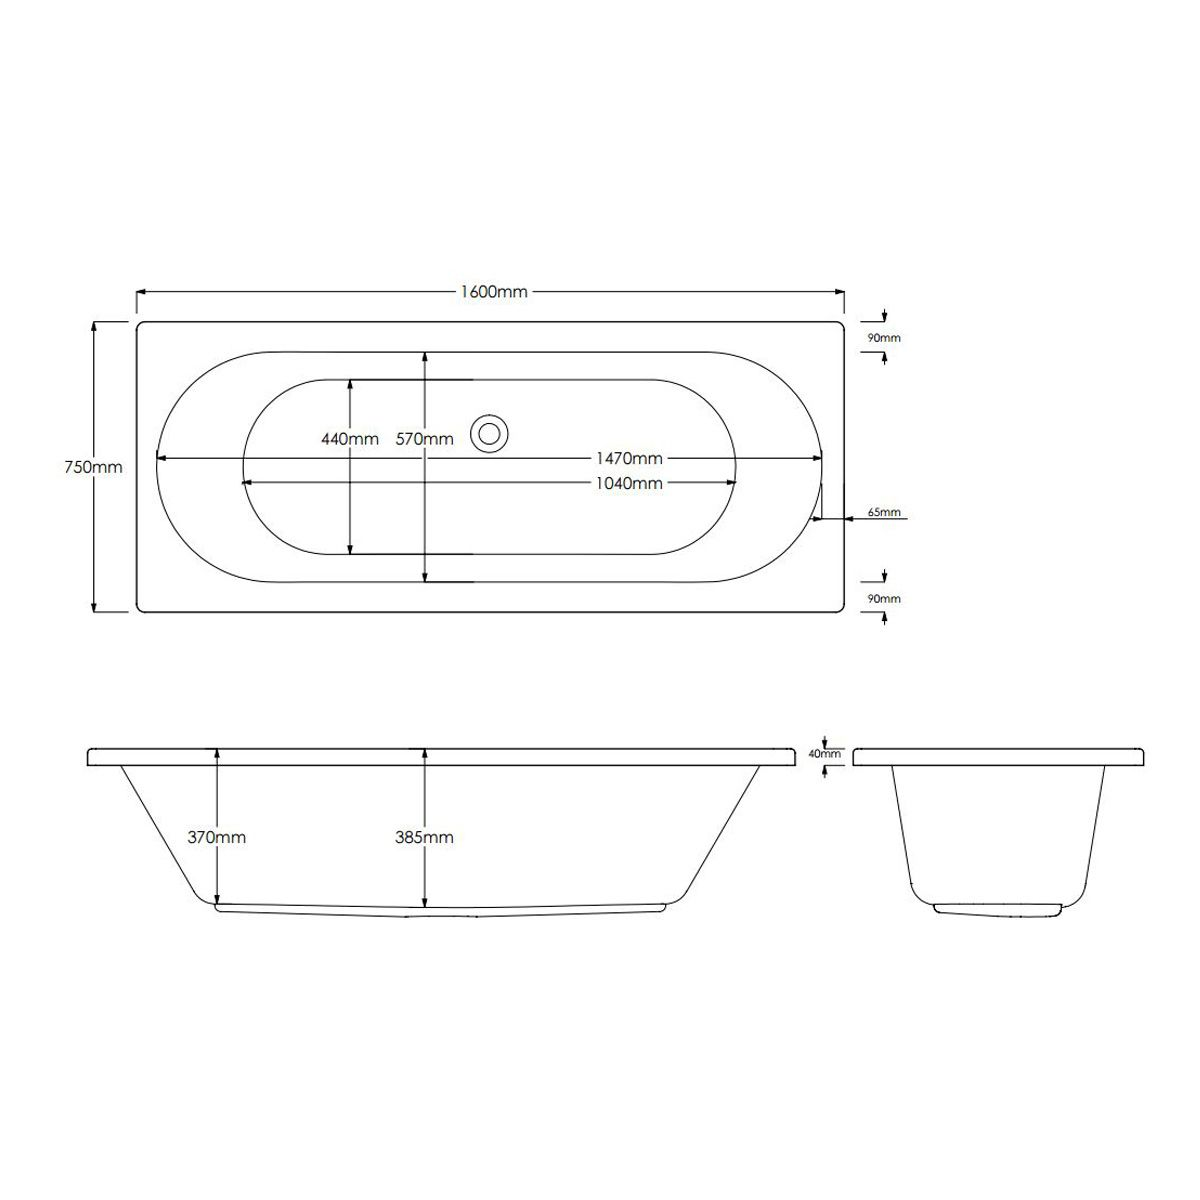 Trojan Cascade Double Ended 18 Jet Heated Air Spa Whirlpool Bath 1600 x 750 with Bath Waste Dimensions